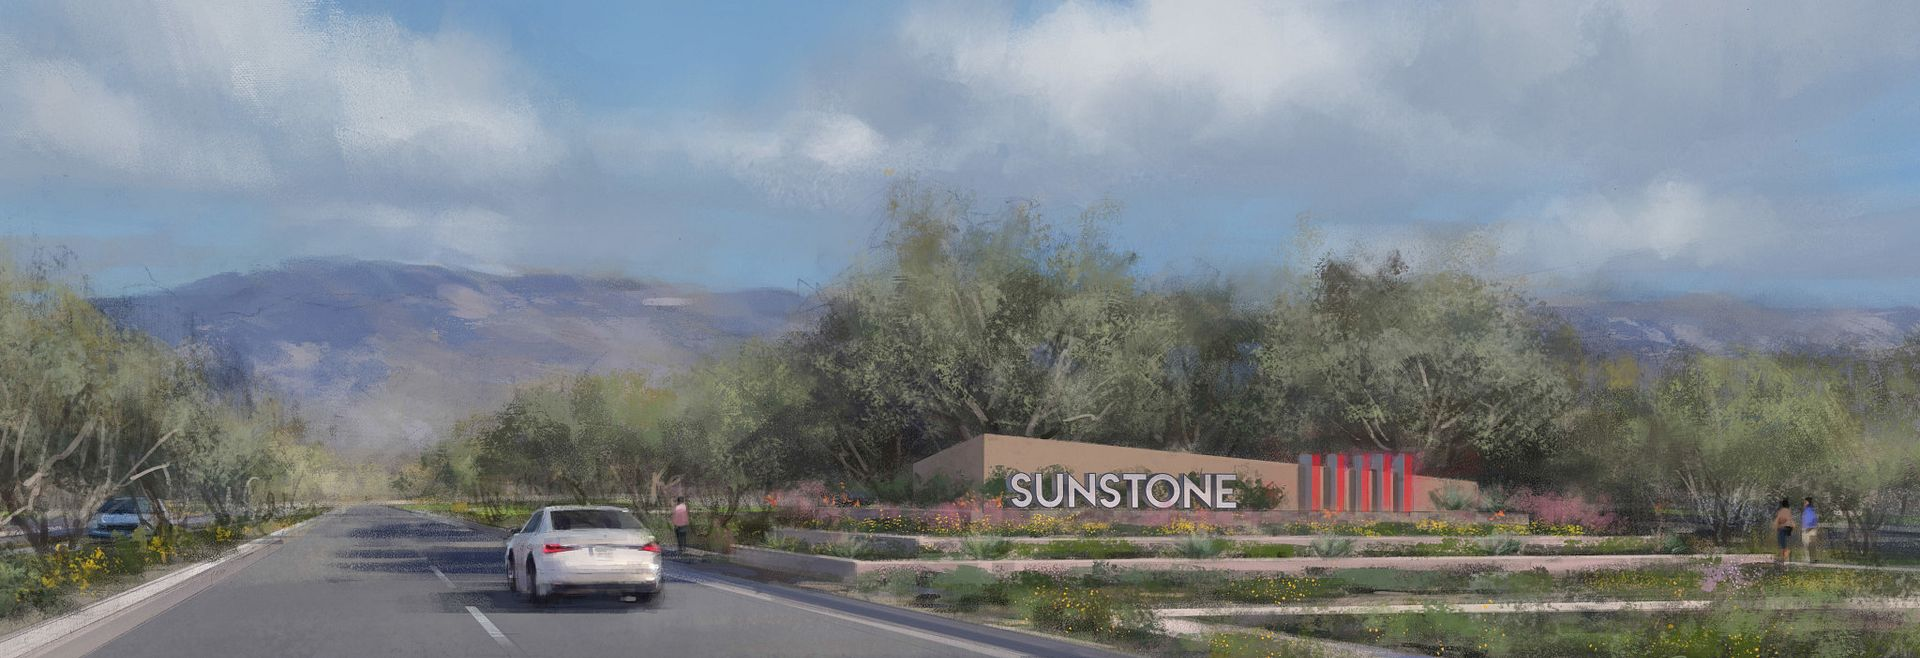 Trilogy Sunstone Entrance Rendering